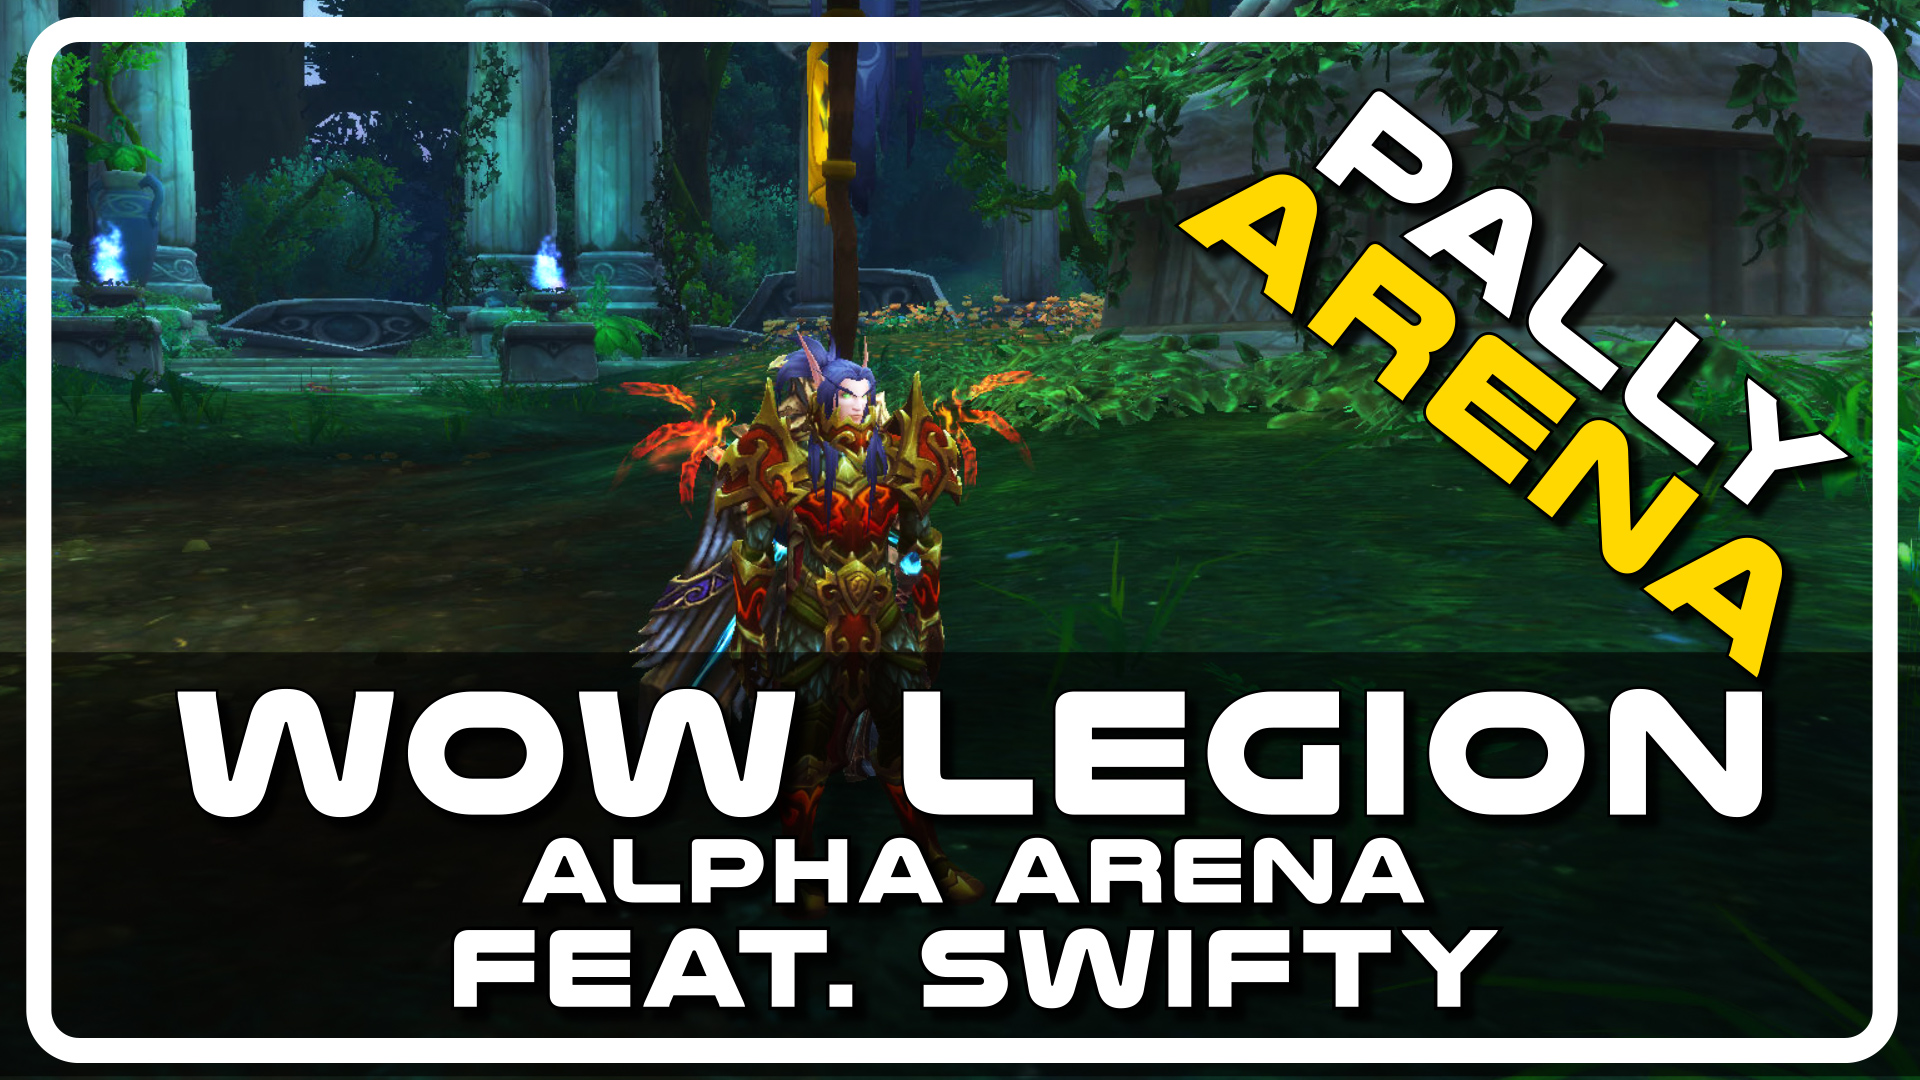 WoW Legion Alpha PvP – Paladin Warrior Arena with Psynaps and Swifty (PvP Gameplay)